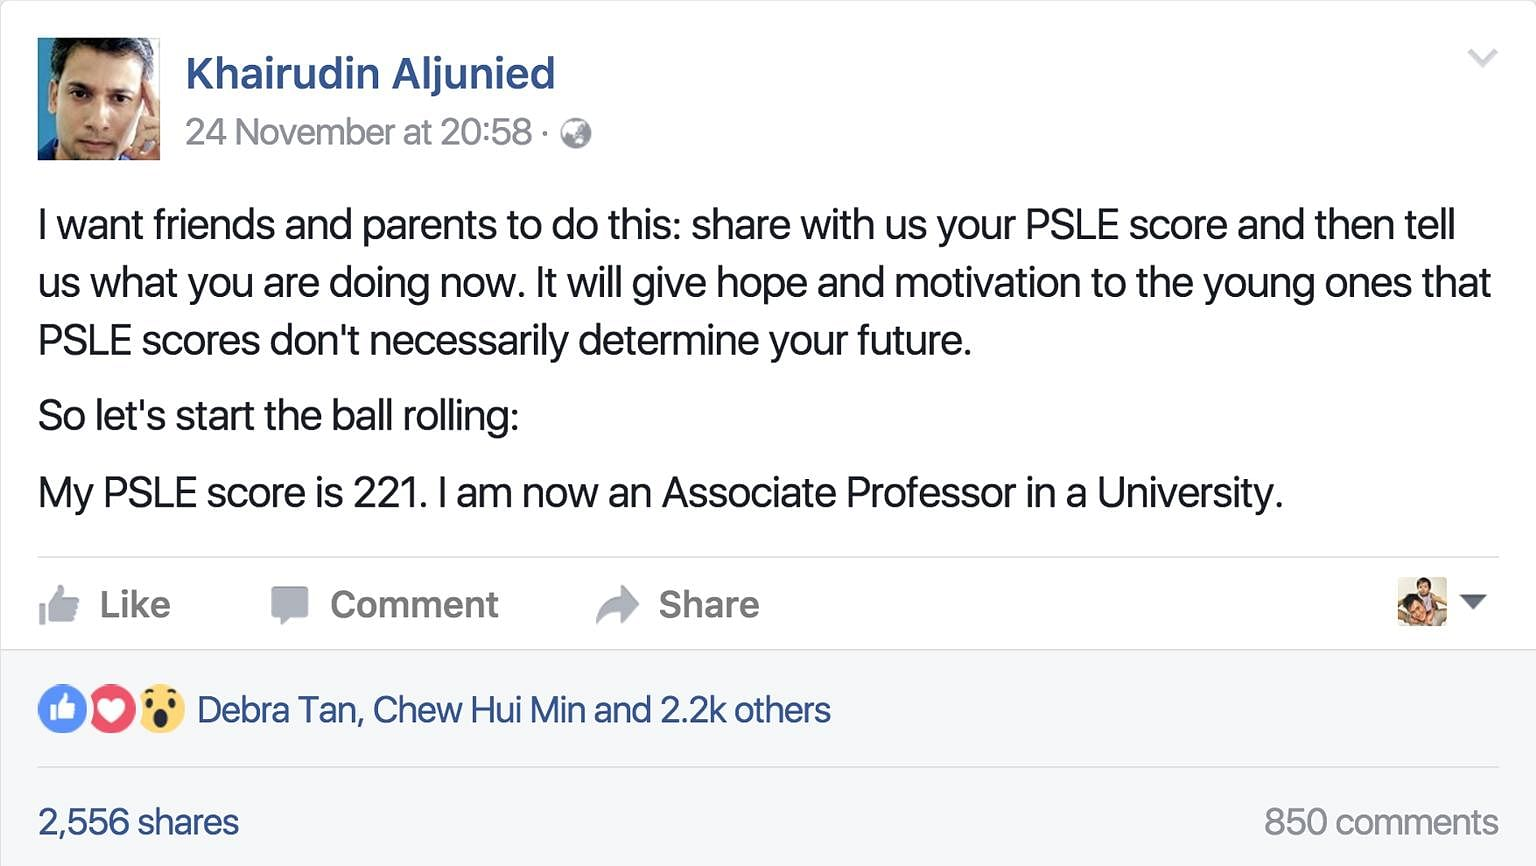 Facebook user Khairudin Aljunied urged friends and parents to share their PSLE scores and their current occupation. The aim is to tell pupils that exam results do not necessarily reflect what they are capable of achieving in life. People have been po